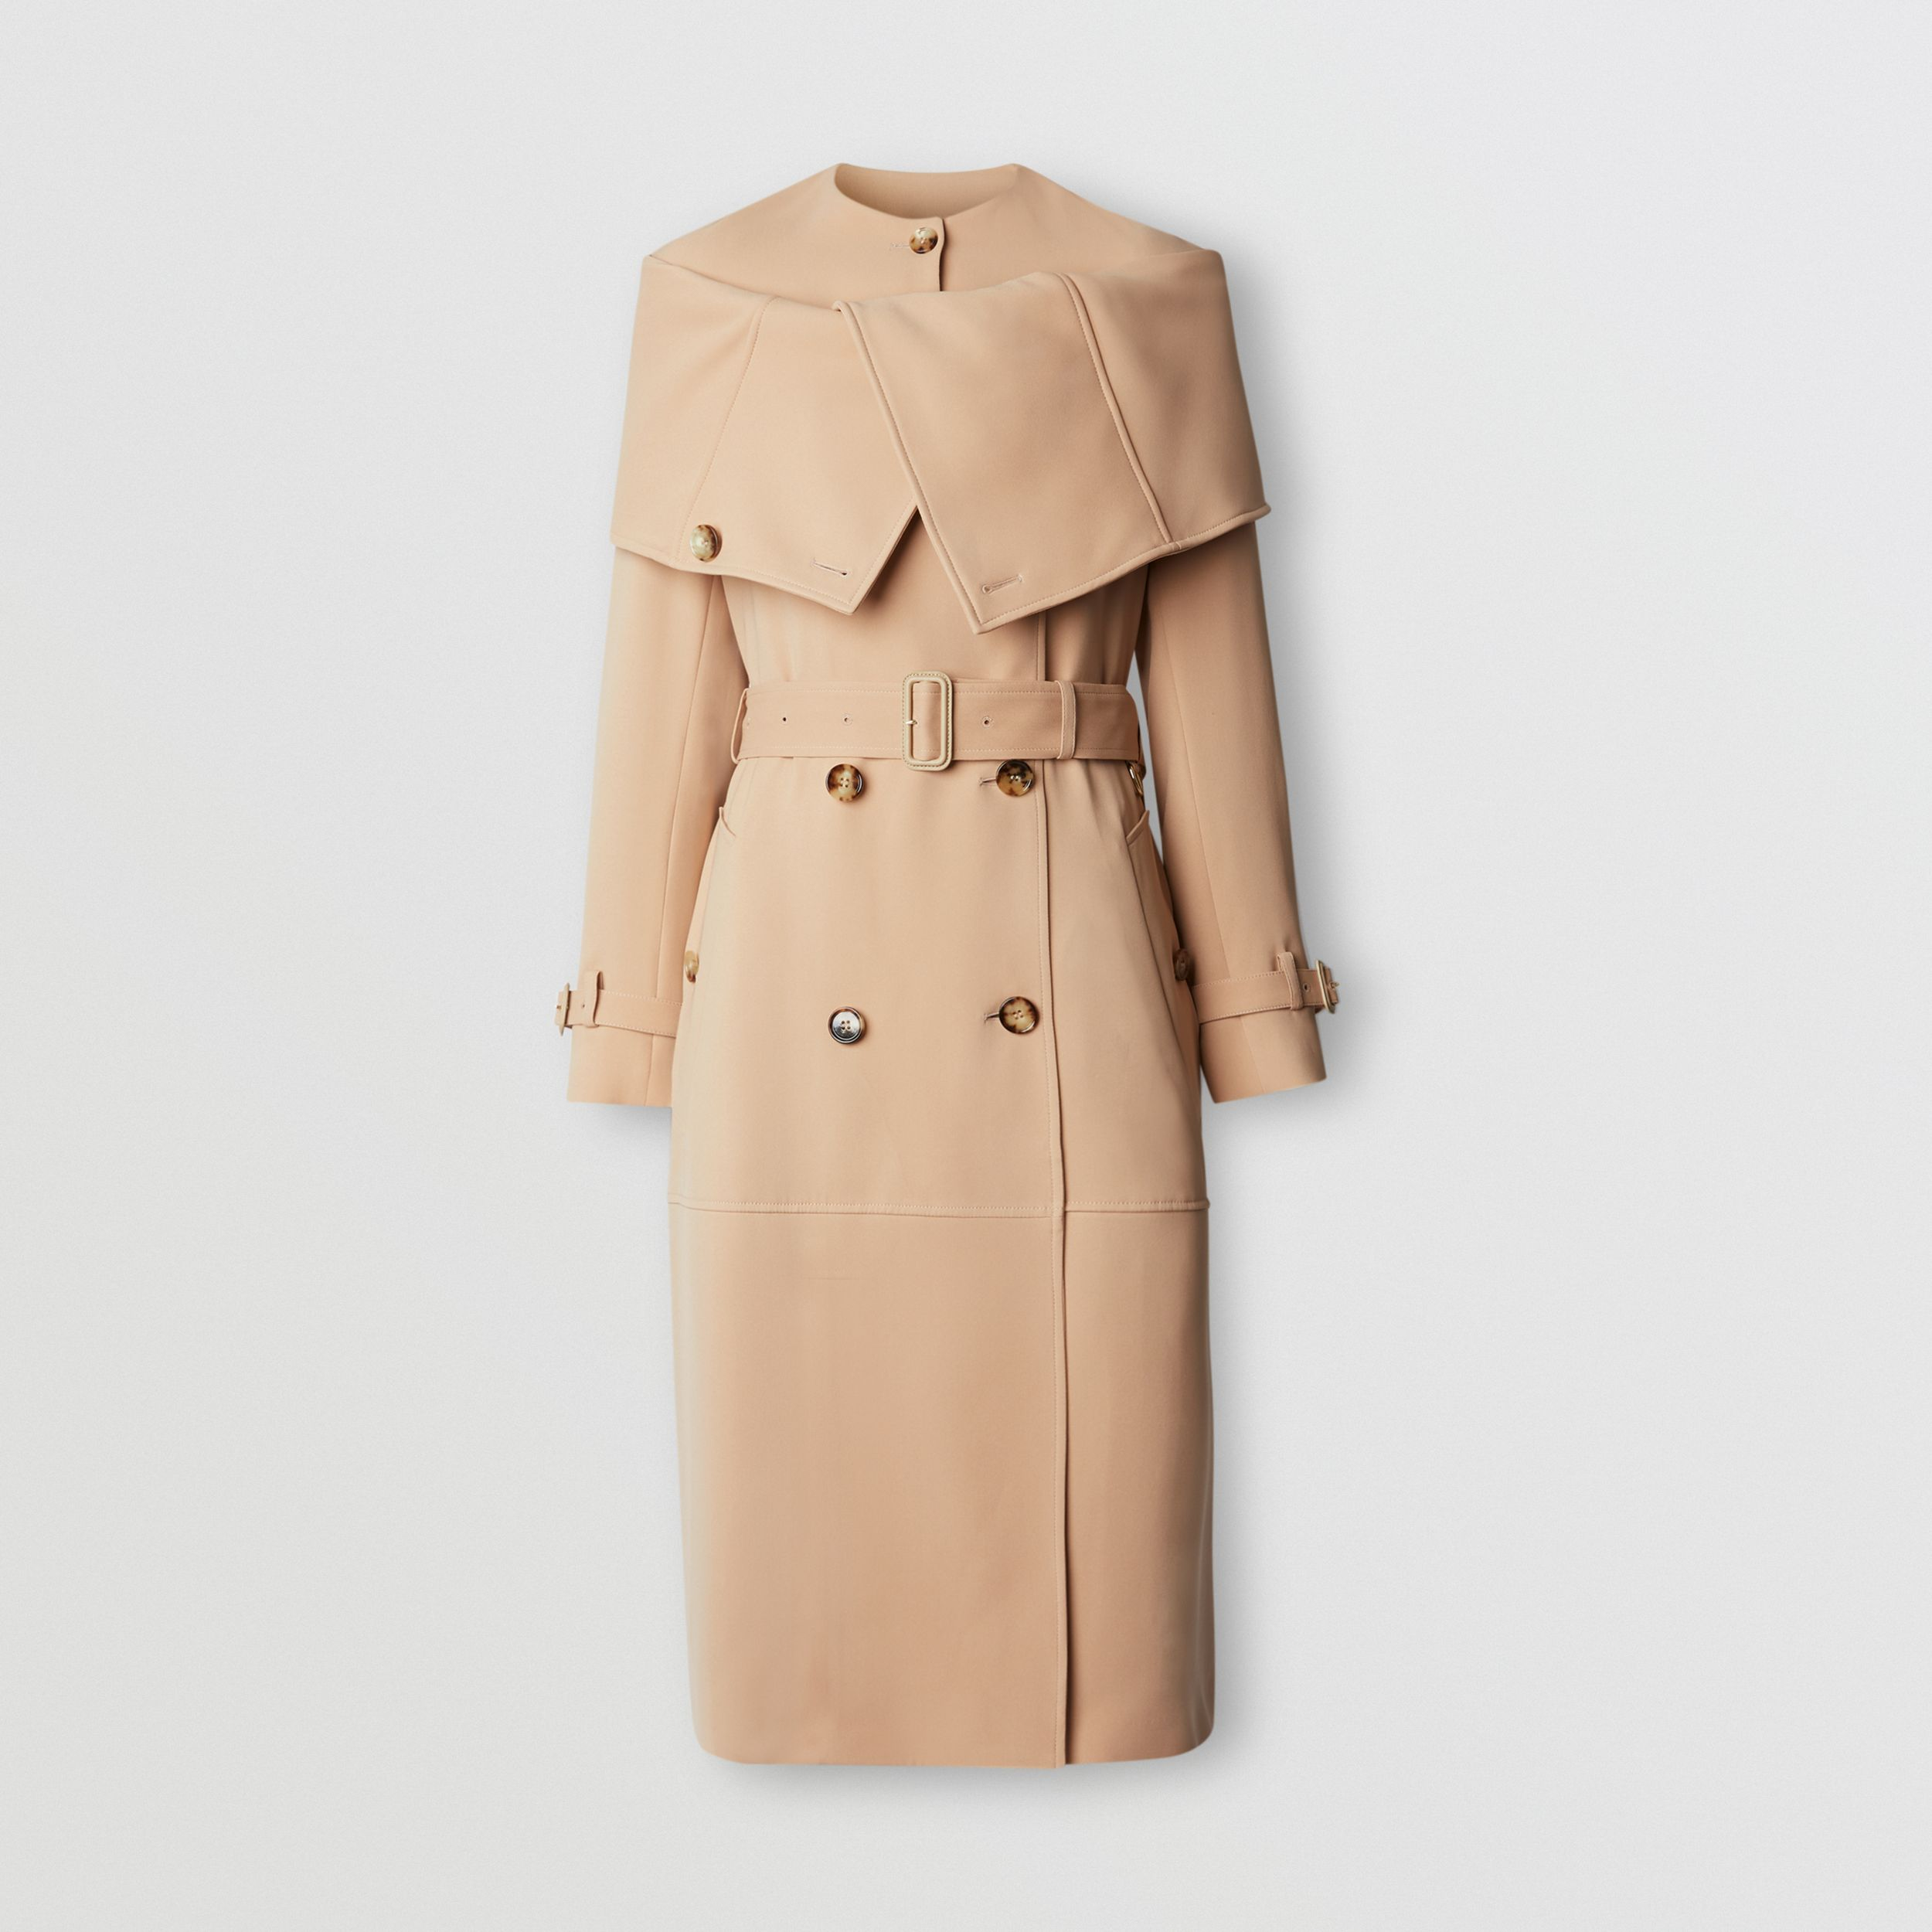 Silk Cady Reconstructed Trench Coat in Dark Biscuit - Women | Burberry - 4